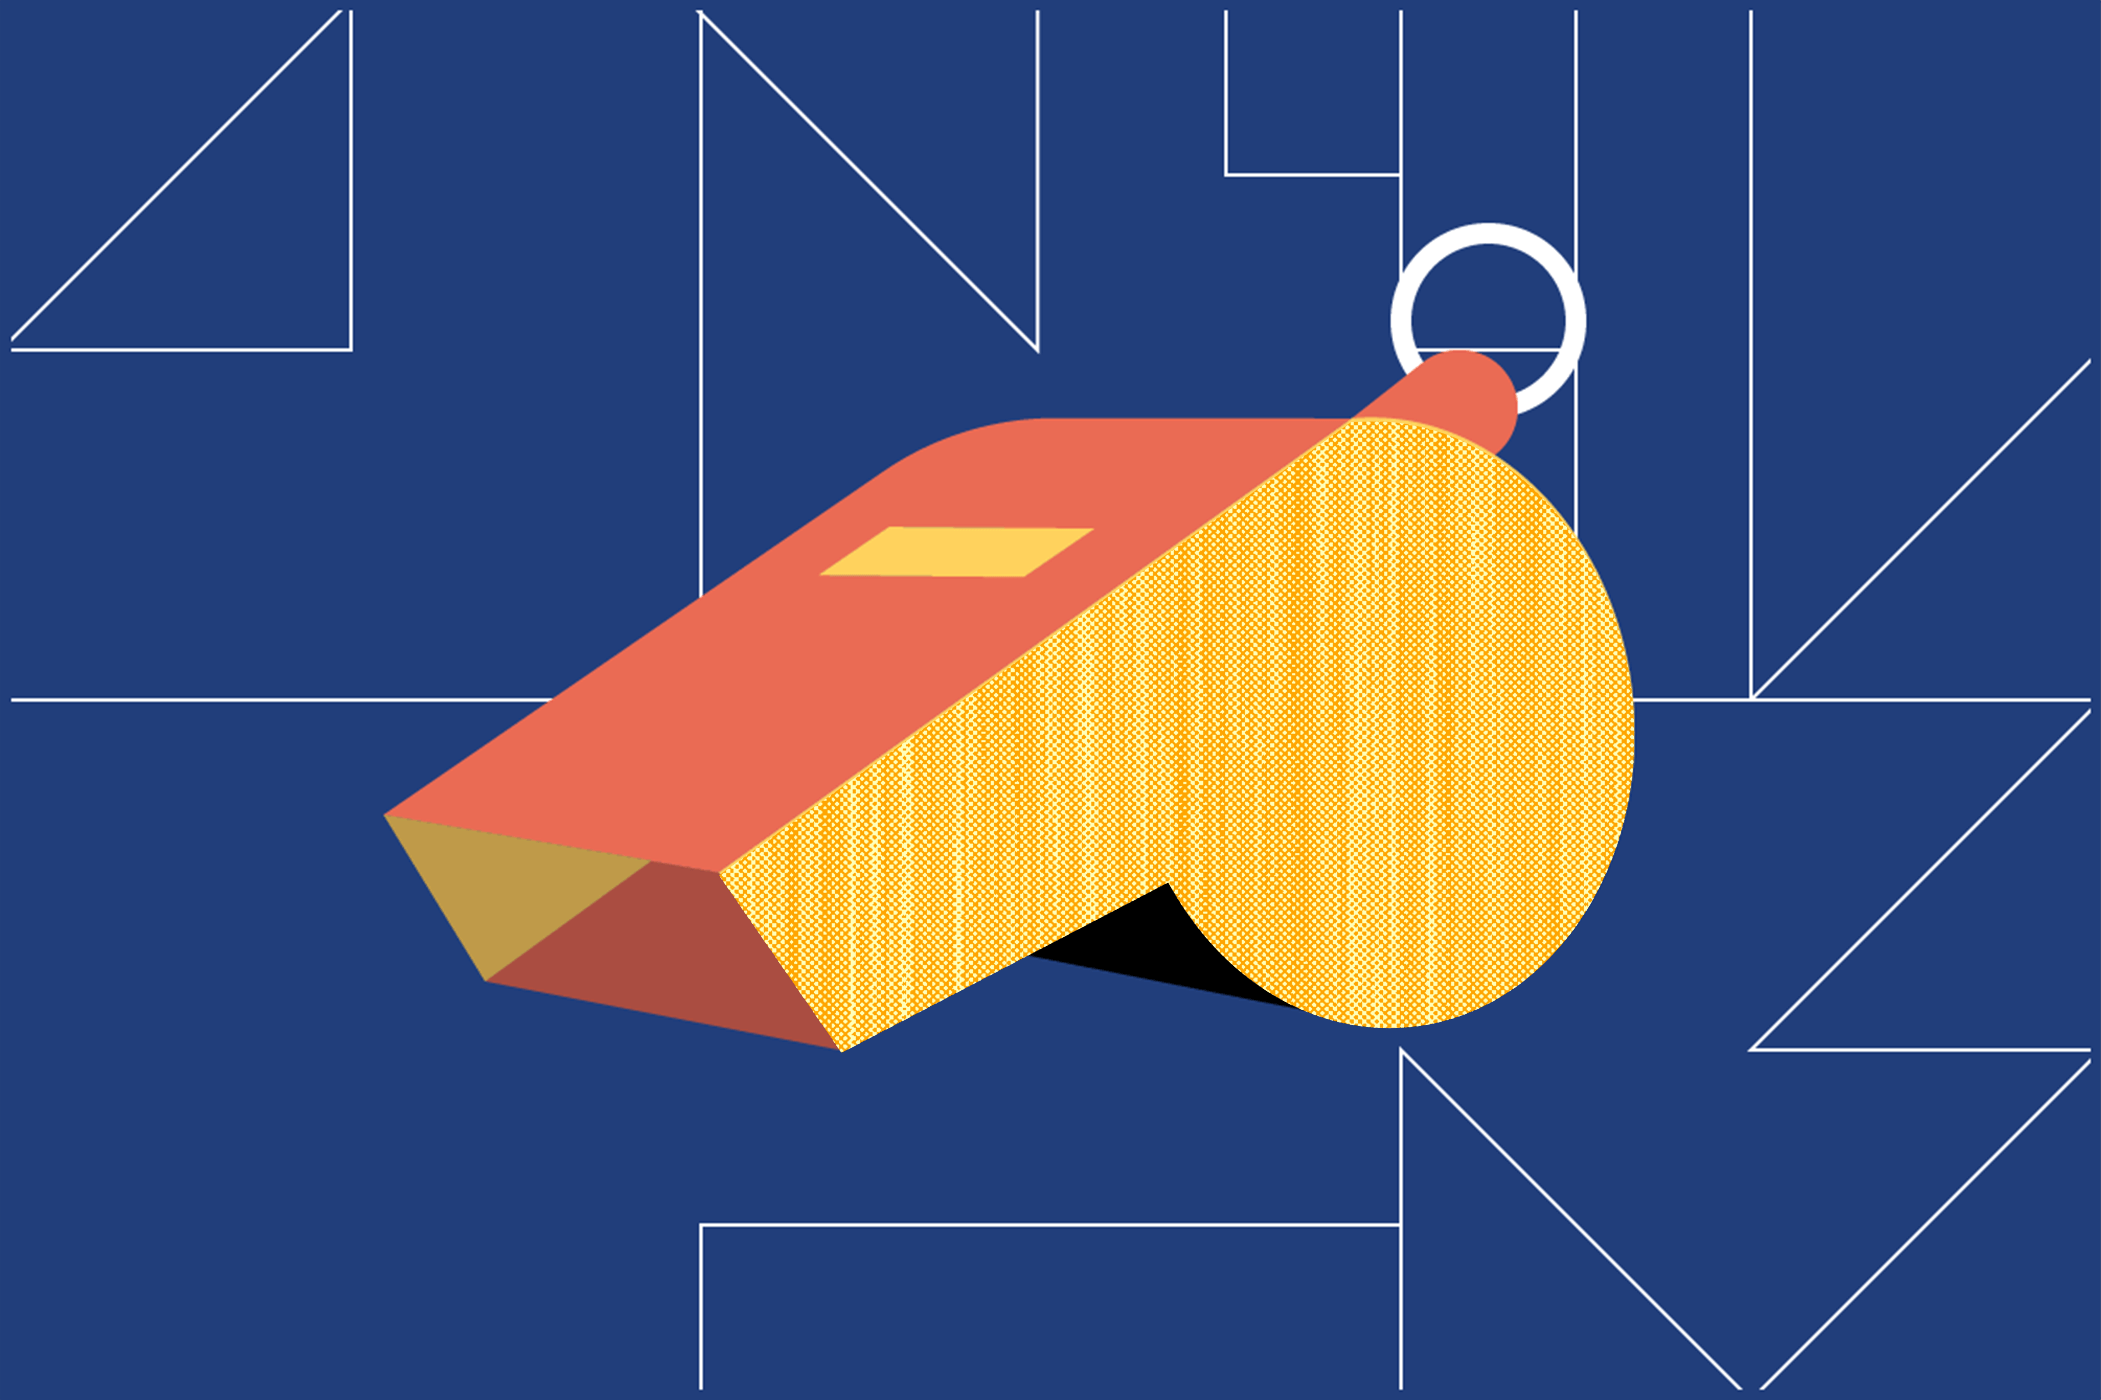 Illustrated whistle